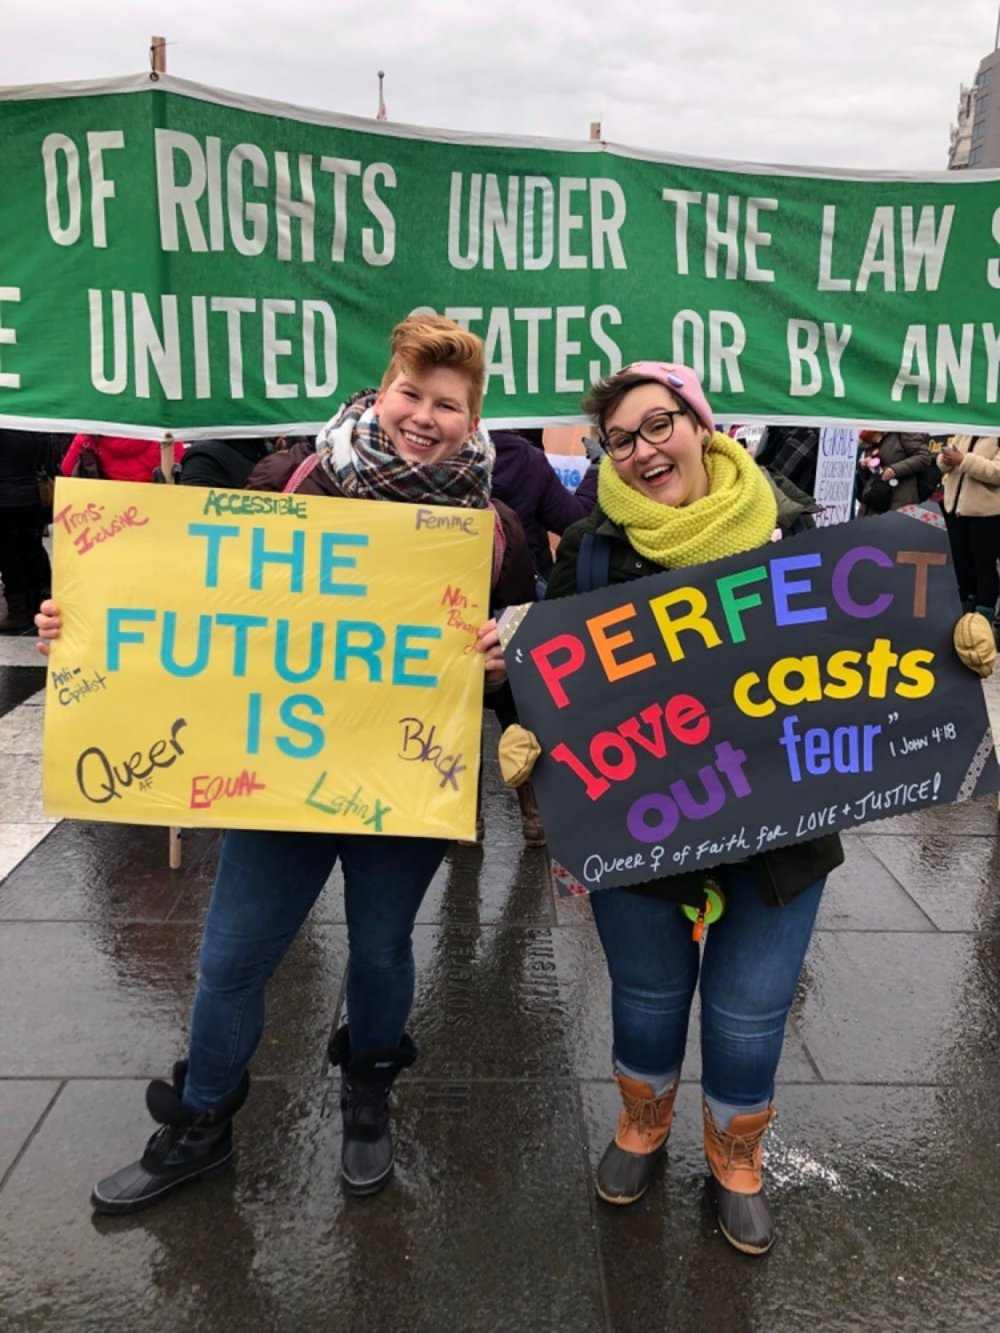 Two women smiling and holding activist signs.